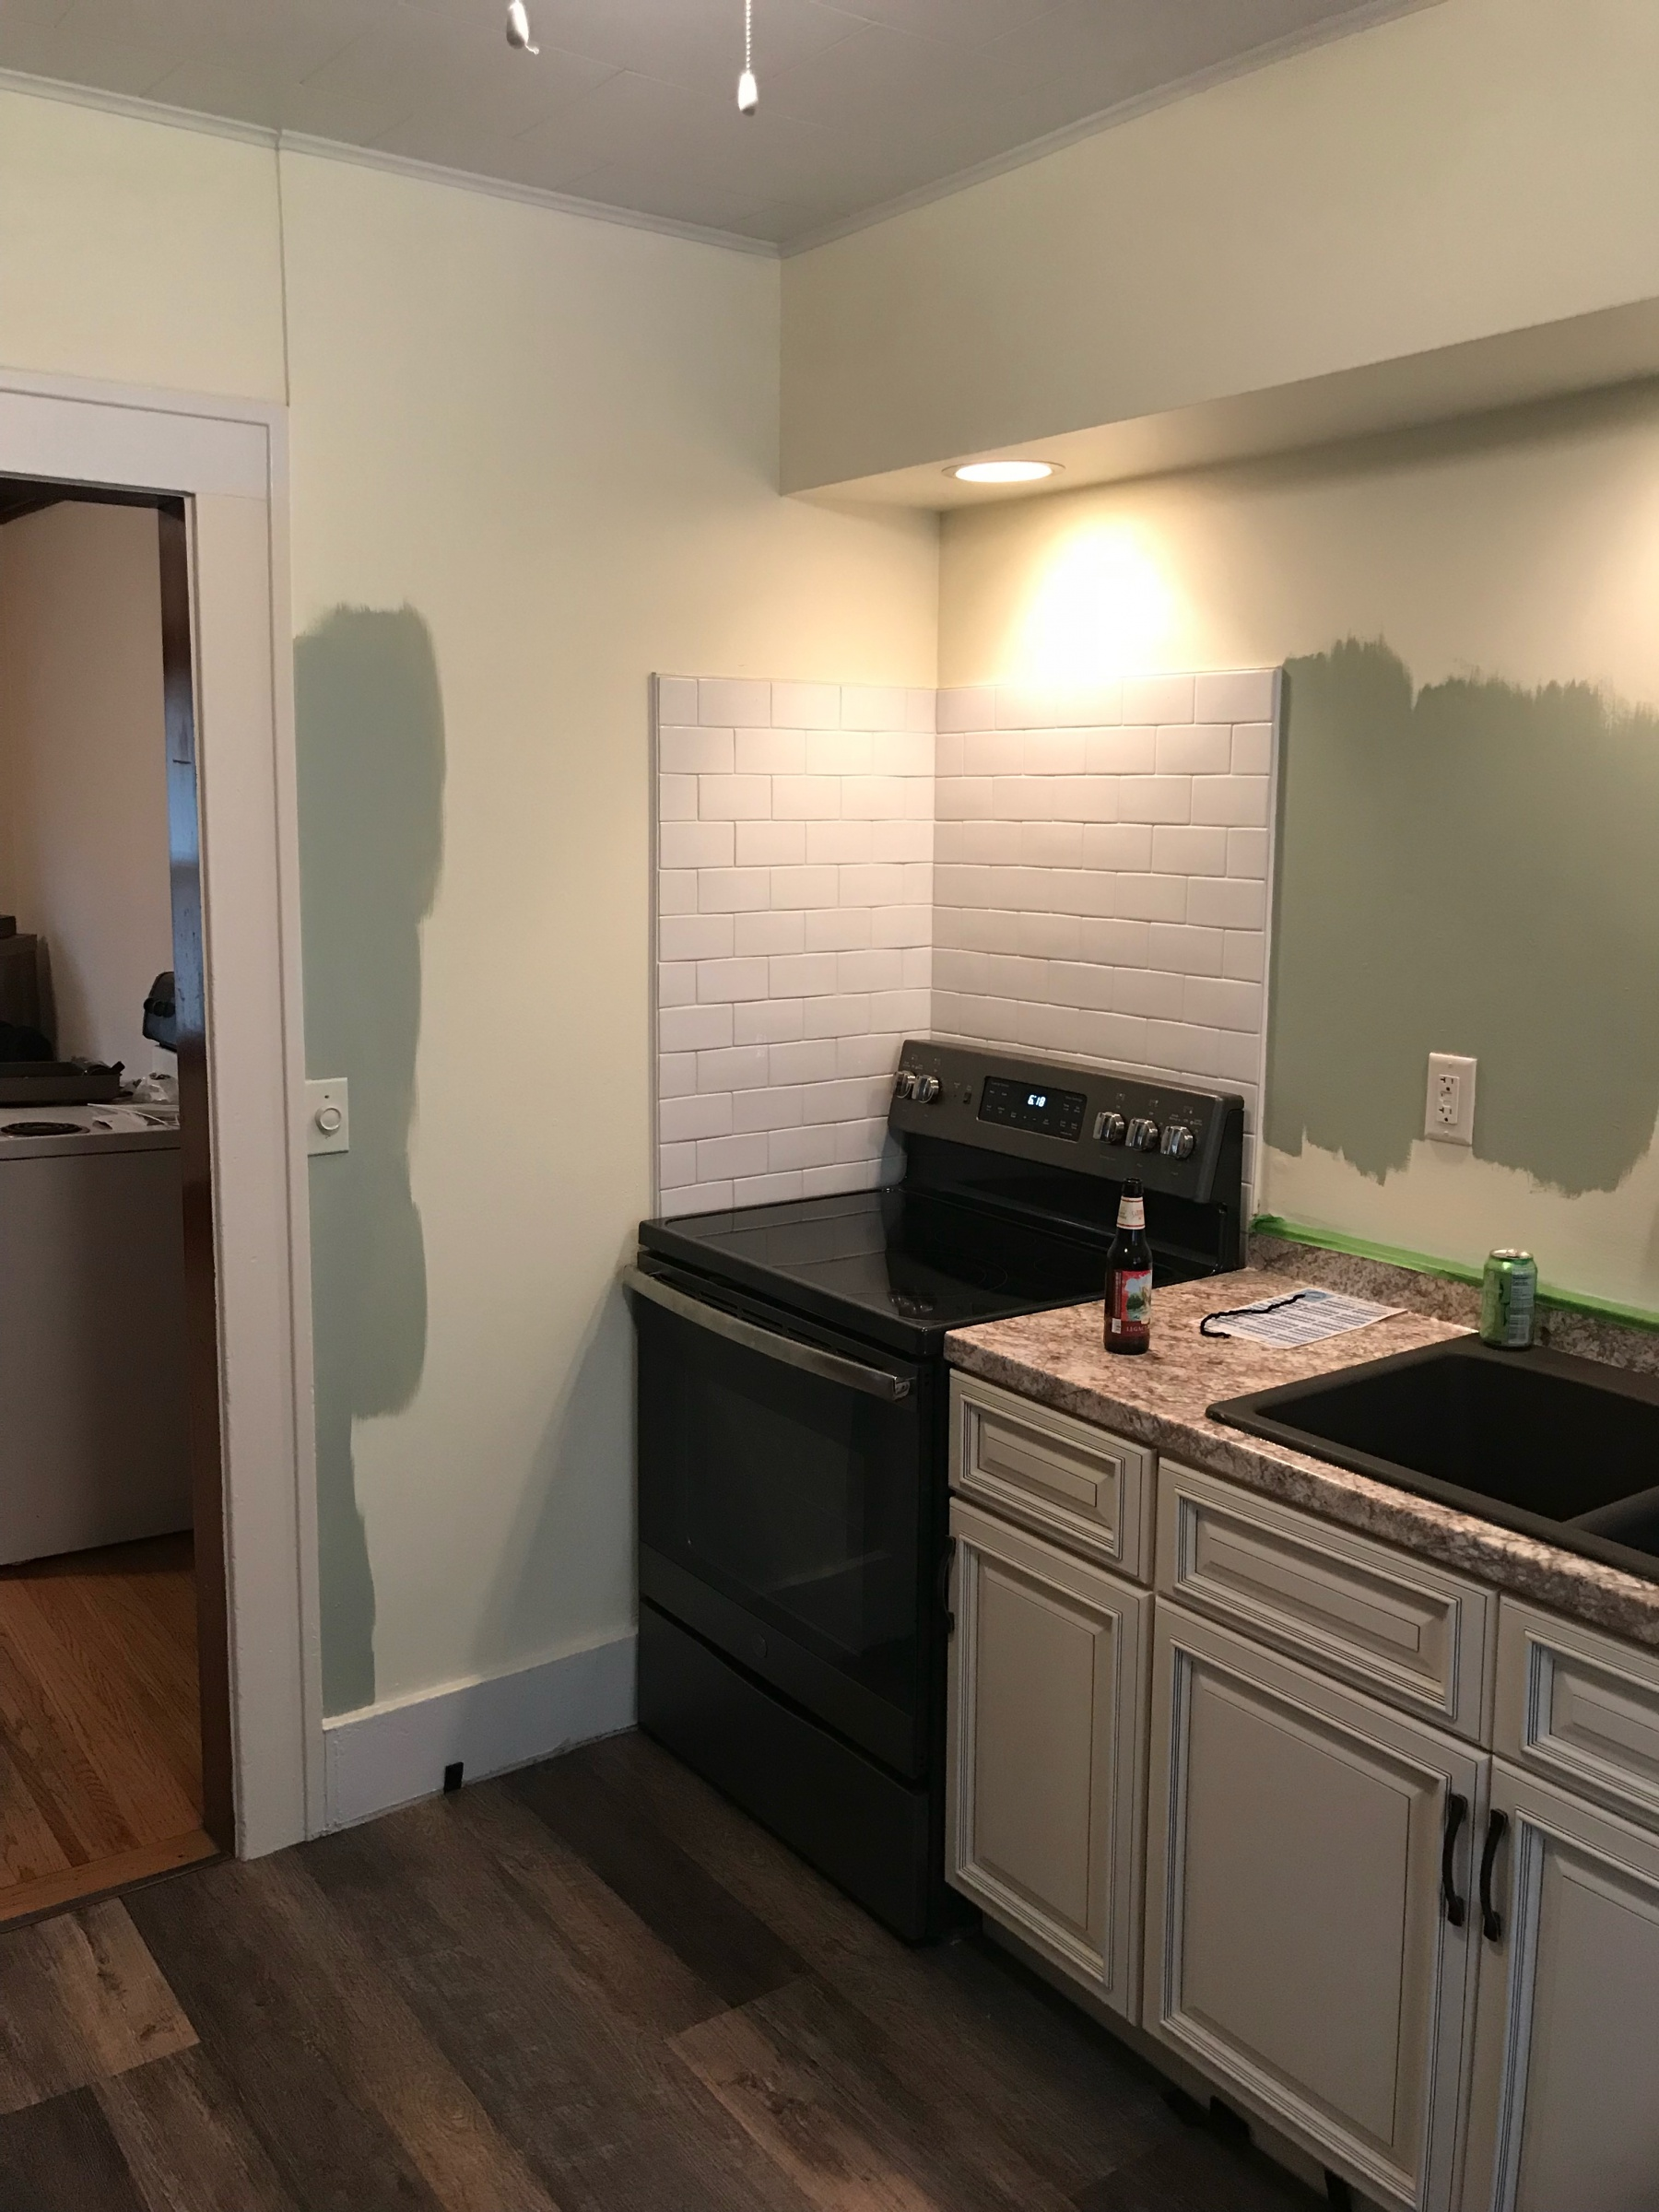 What color should I paint new kitchen??-img_2714.jpg